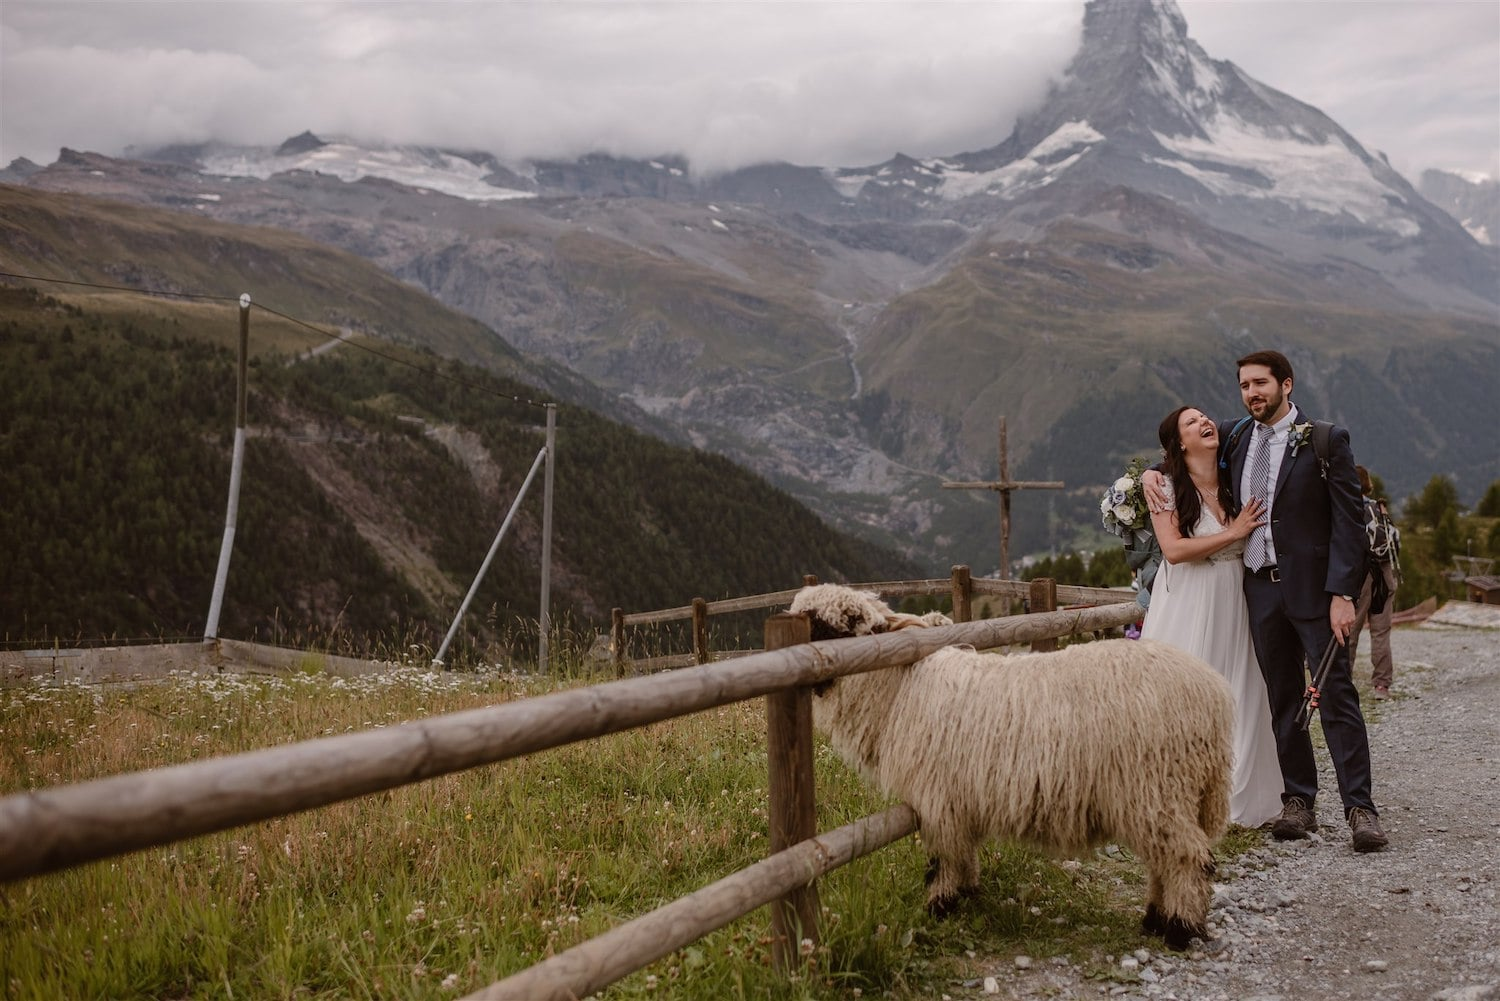 Lovers laughing and looking forward to getting married in front of the Matterhorn